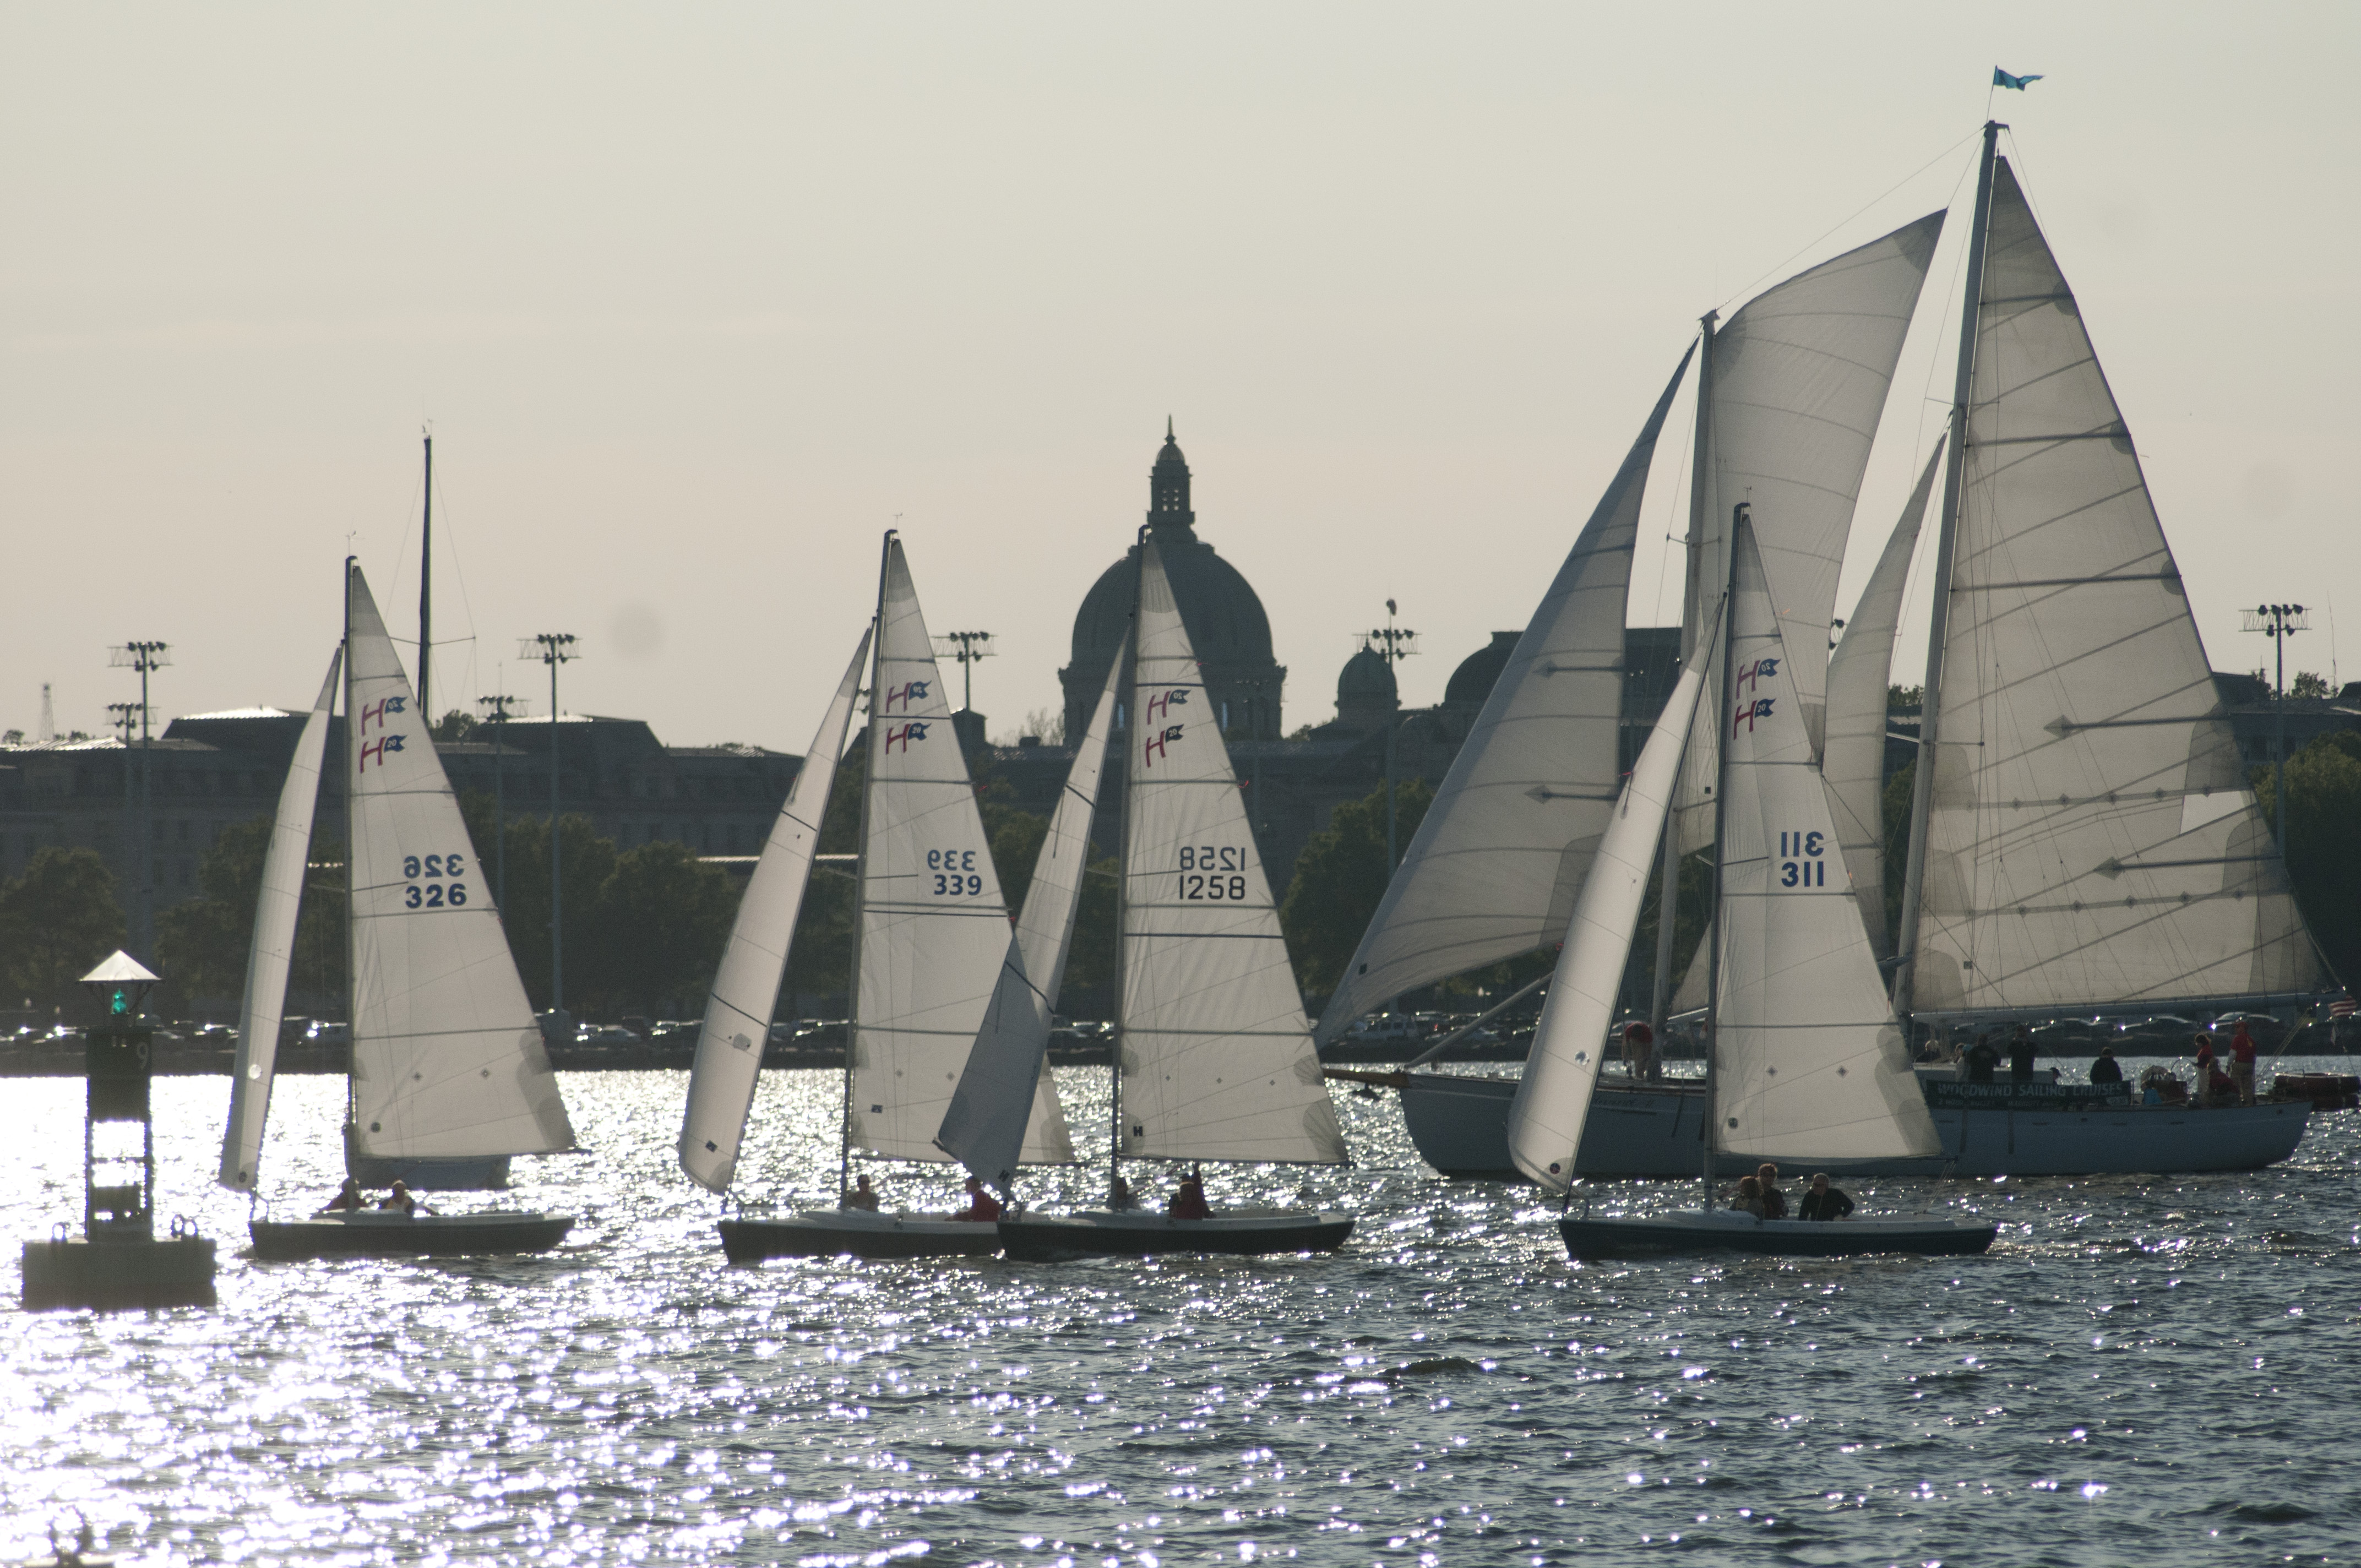 Black and white Schooner and Sailboats with Annapolis Skyline